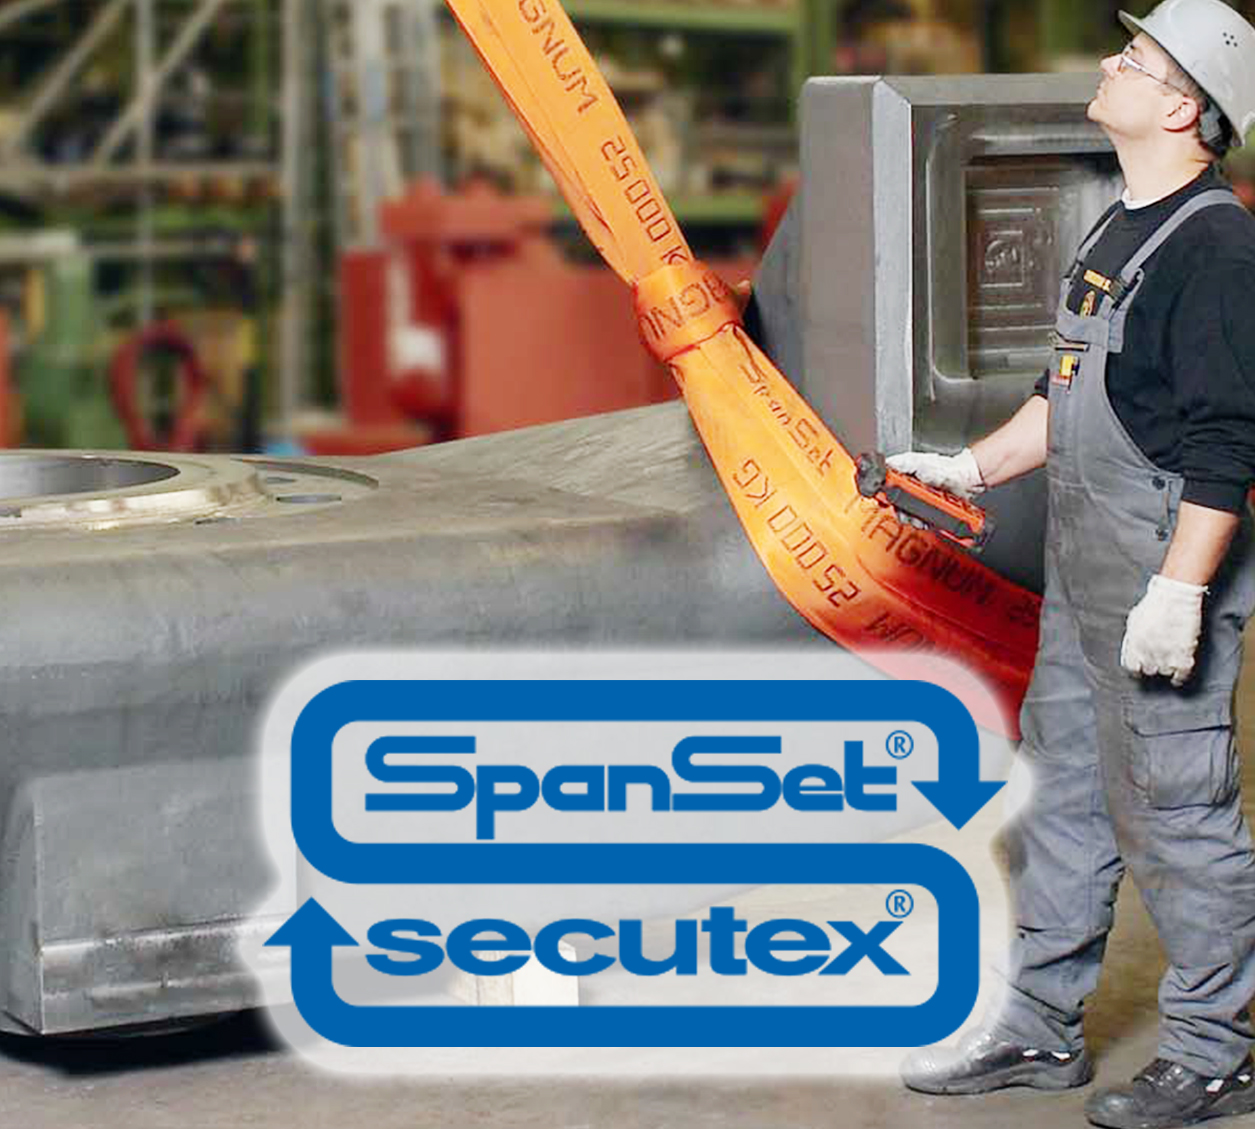 Spanset-Secutex